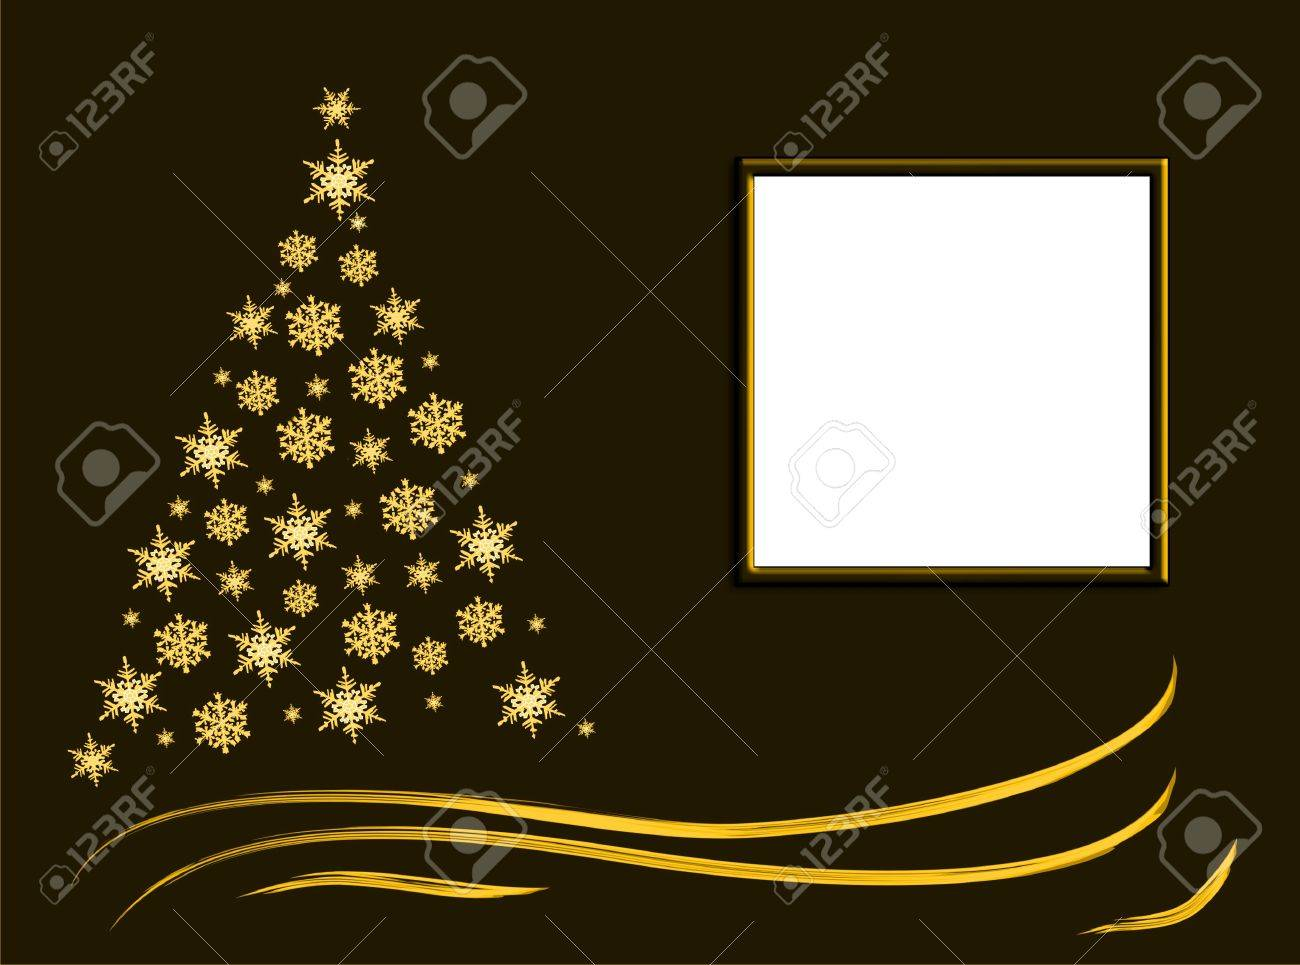 Winter abstract christmas gold tree spruce, background, frame for text Stock Photo - 6089860